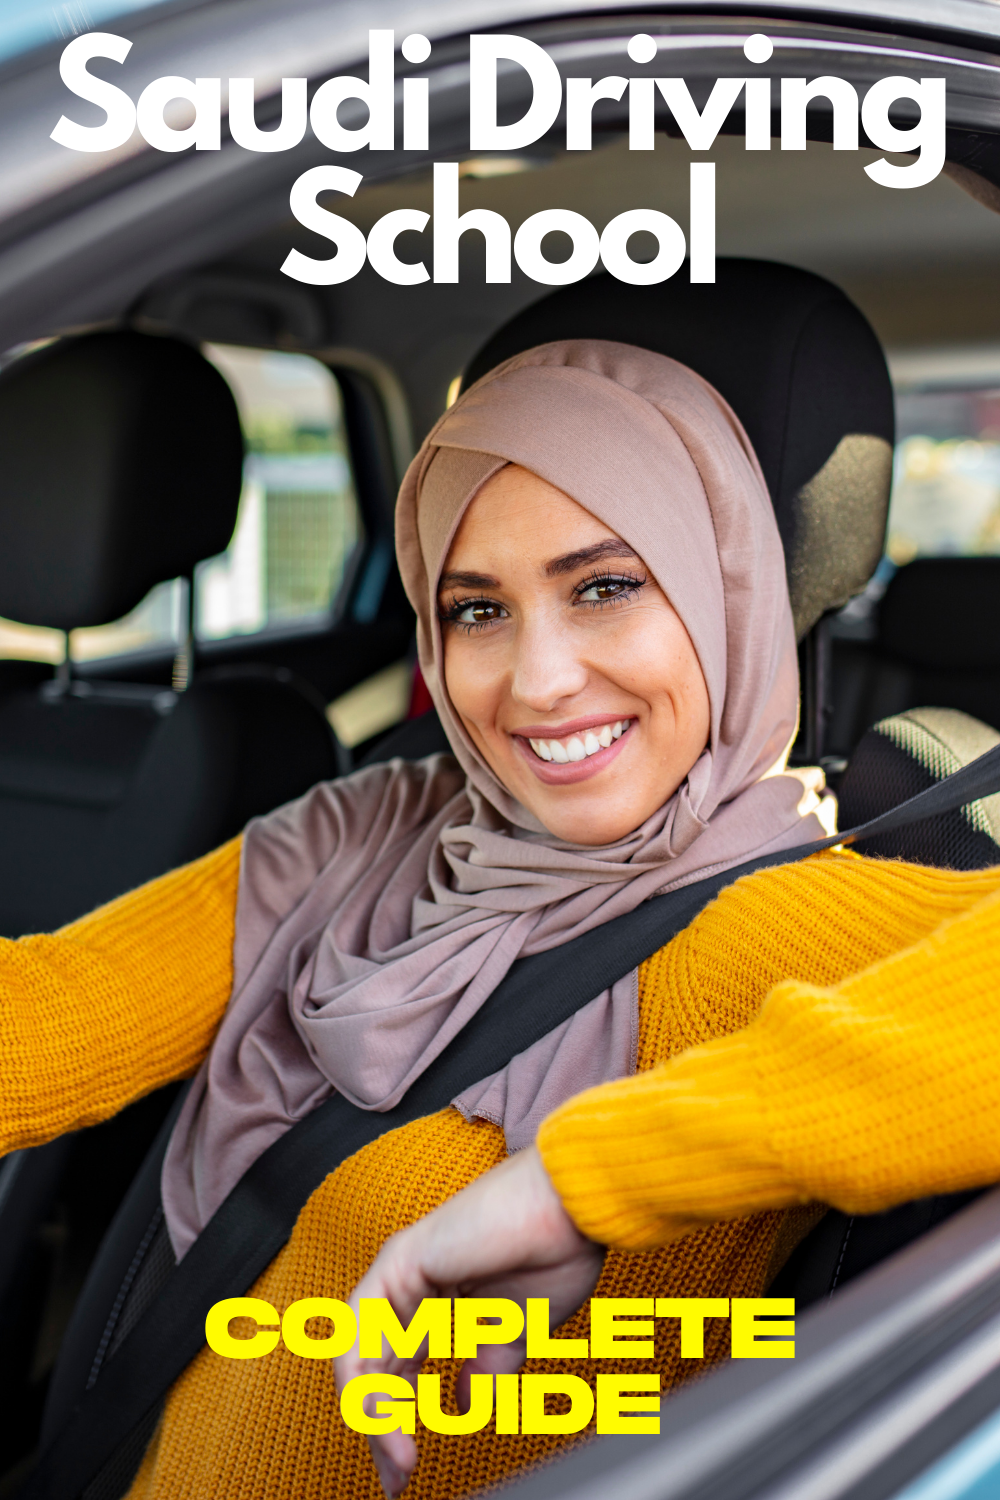 Saudi Driving School Complete Guide Driving School Driving License Driving